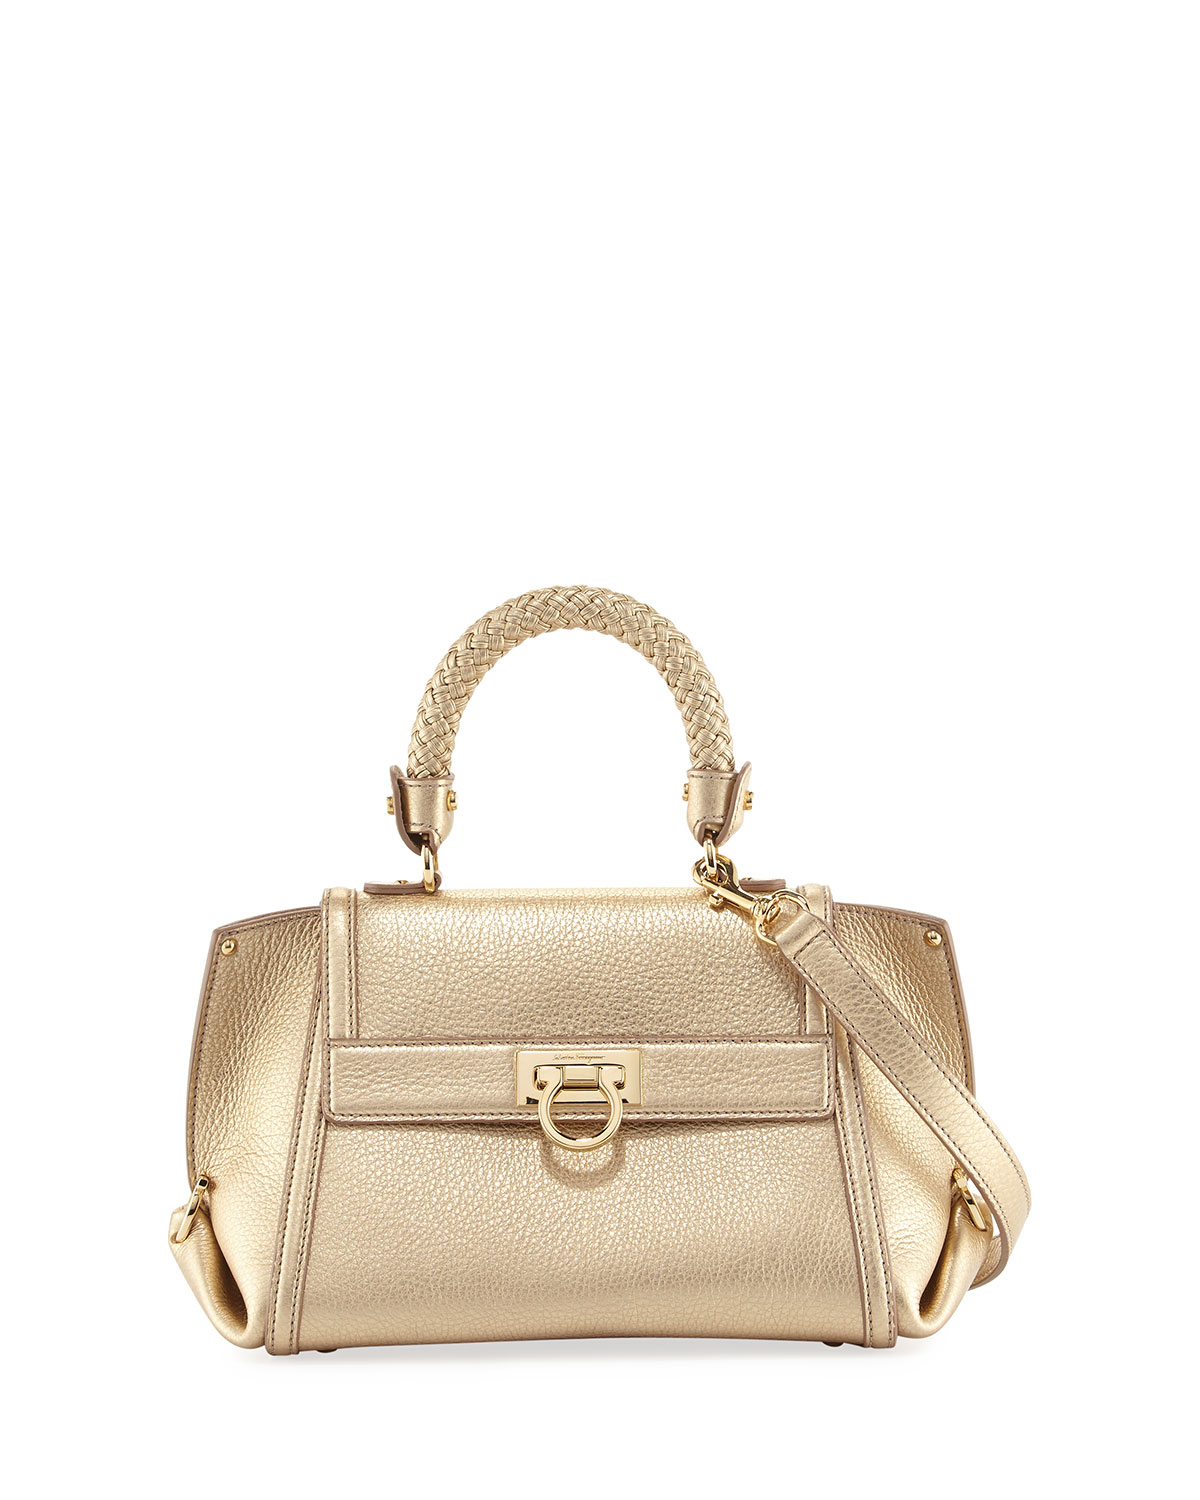 c54c40651e Salvatore Ferragamo Sofia Small Metallic Leather Satchel Bag